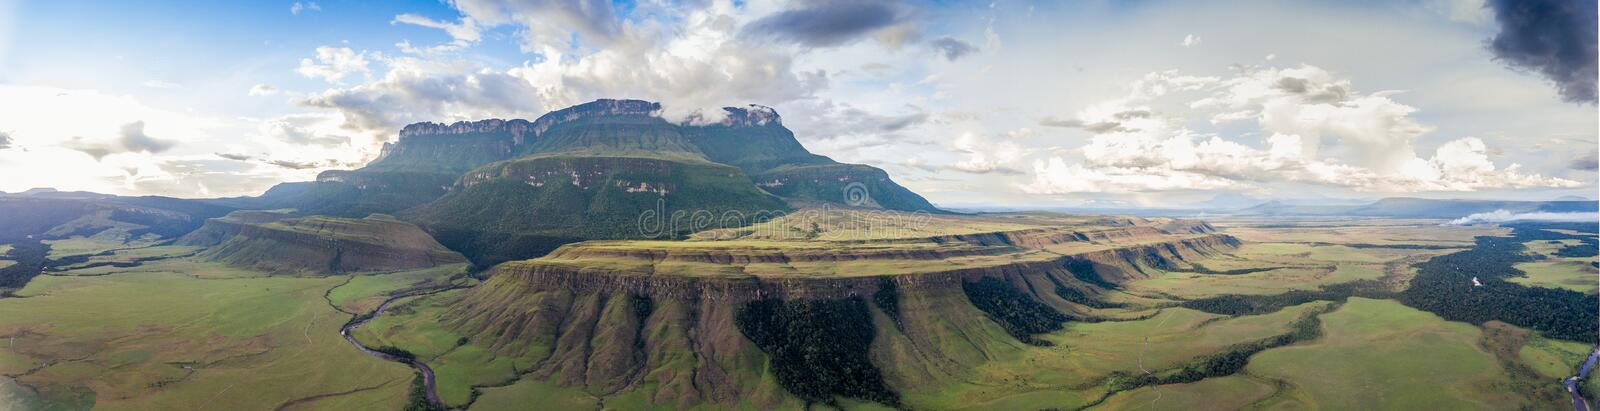 Panoramic View of Auyantepui Mountain, Venezuela stock images